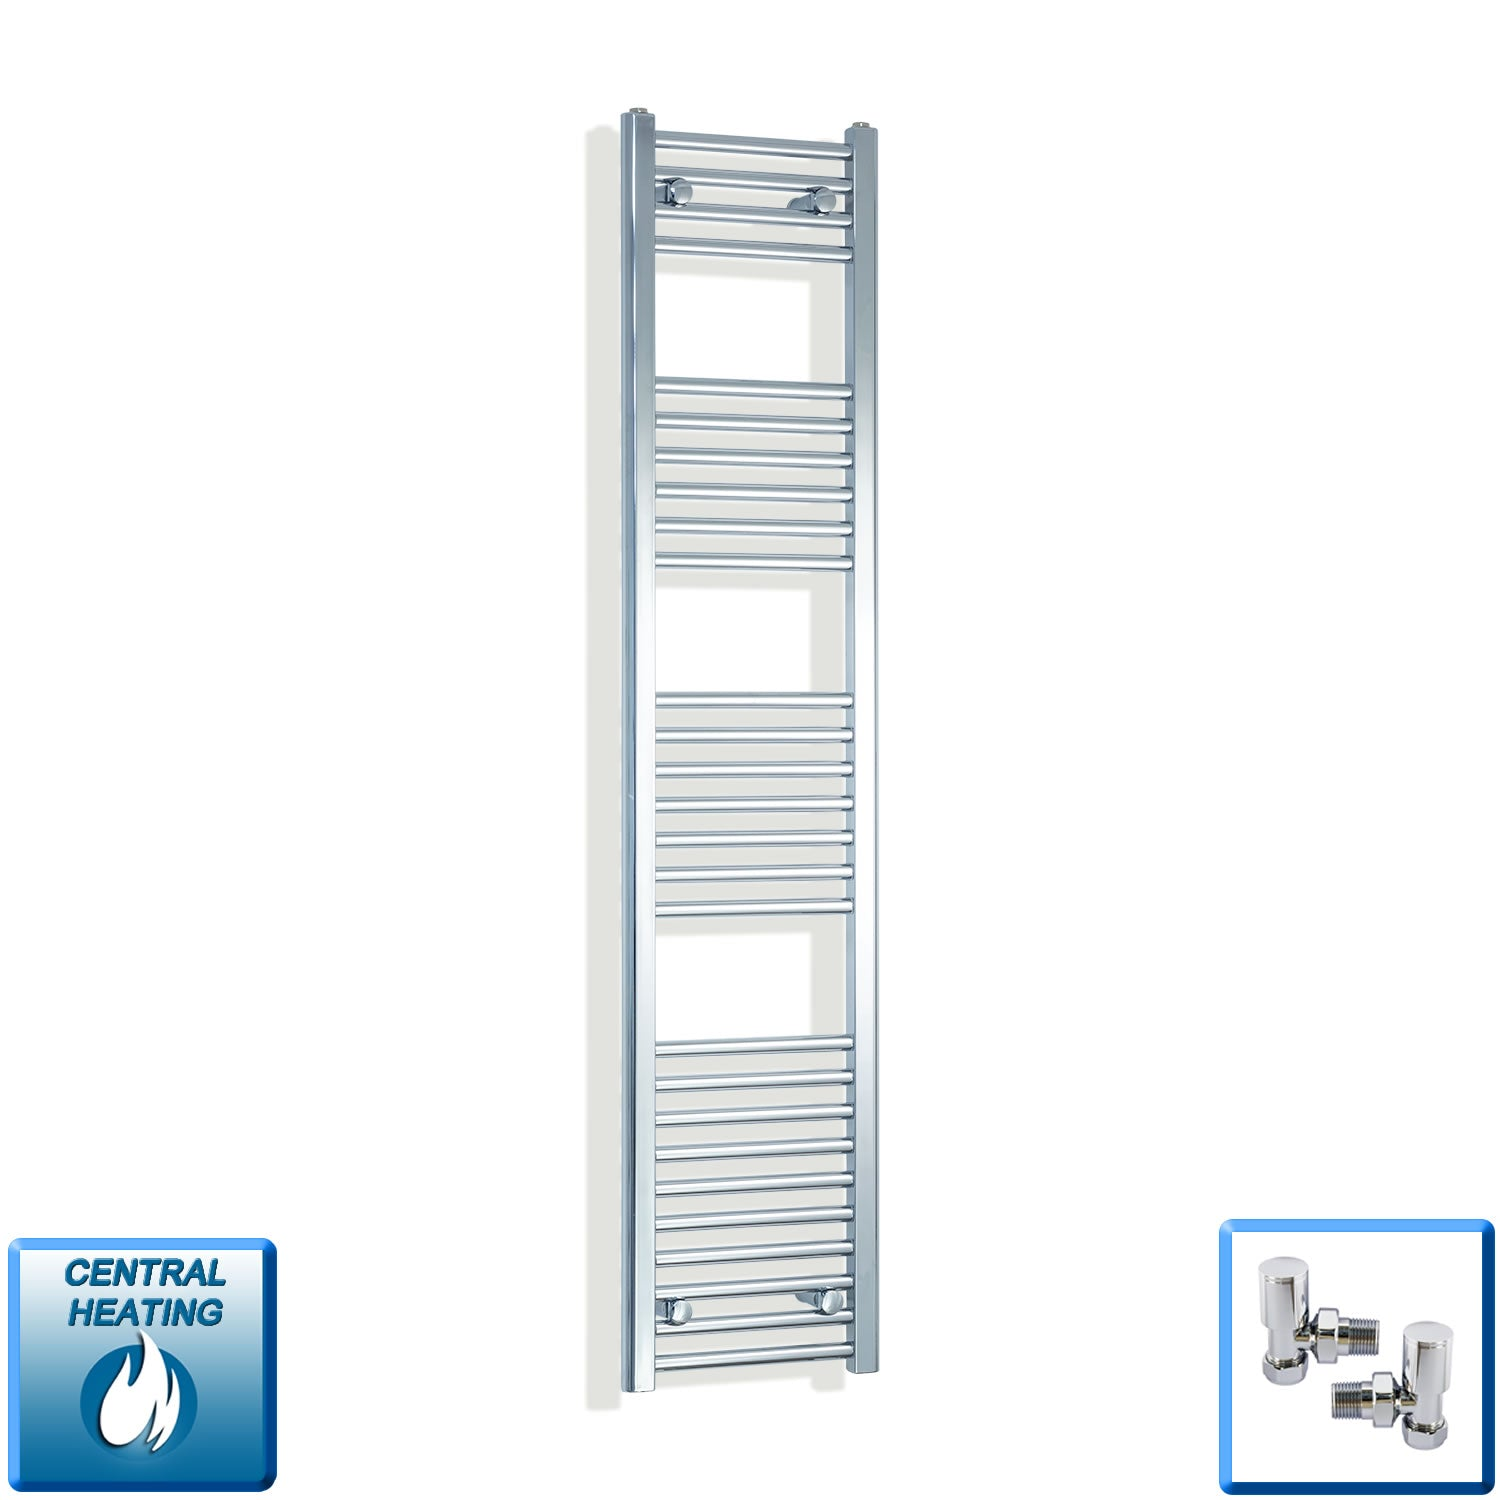 350mm Wide 1600mm High Chrome Towel Rail Radiator With Angled Valve